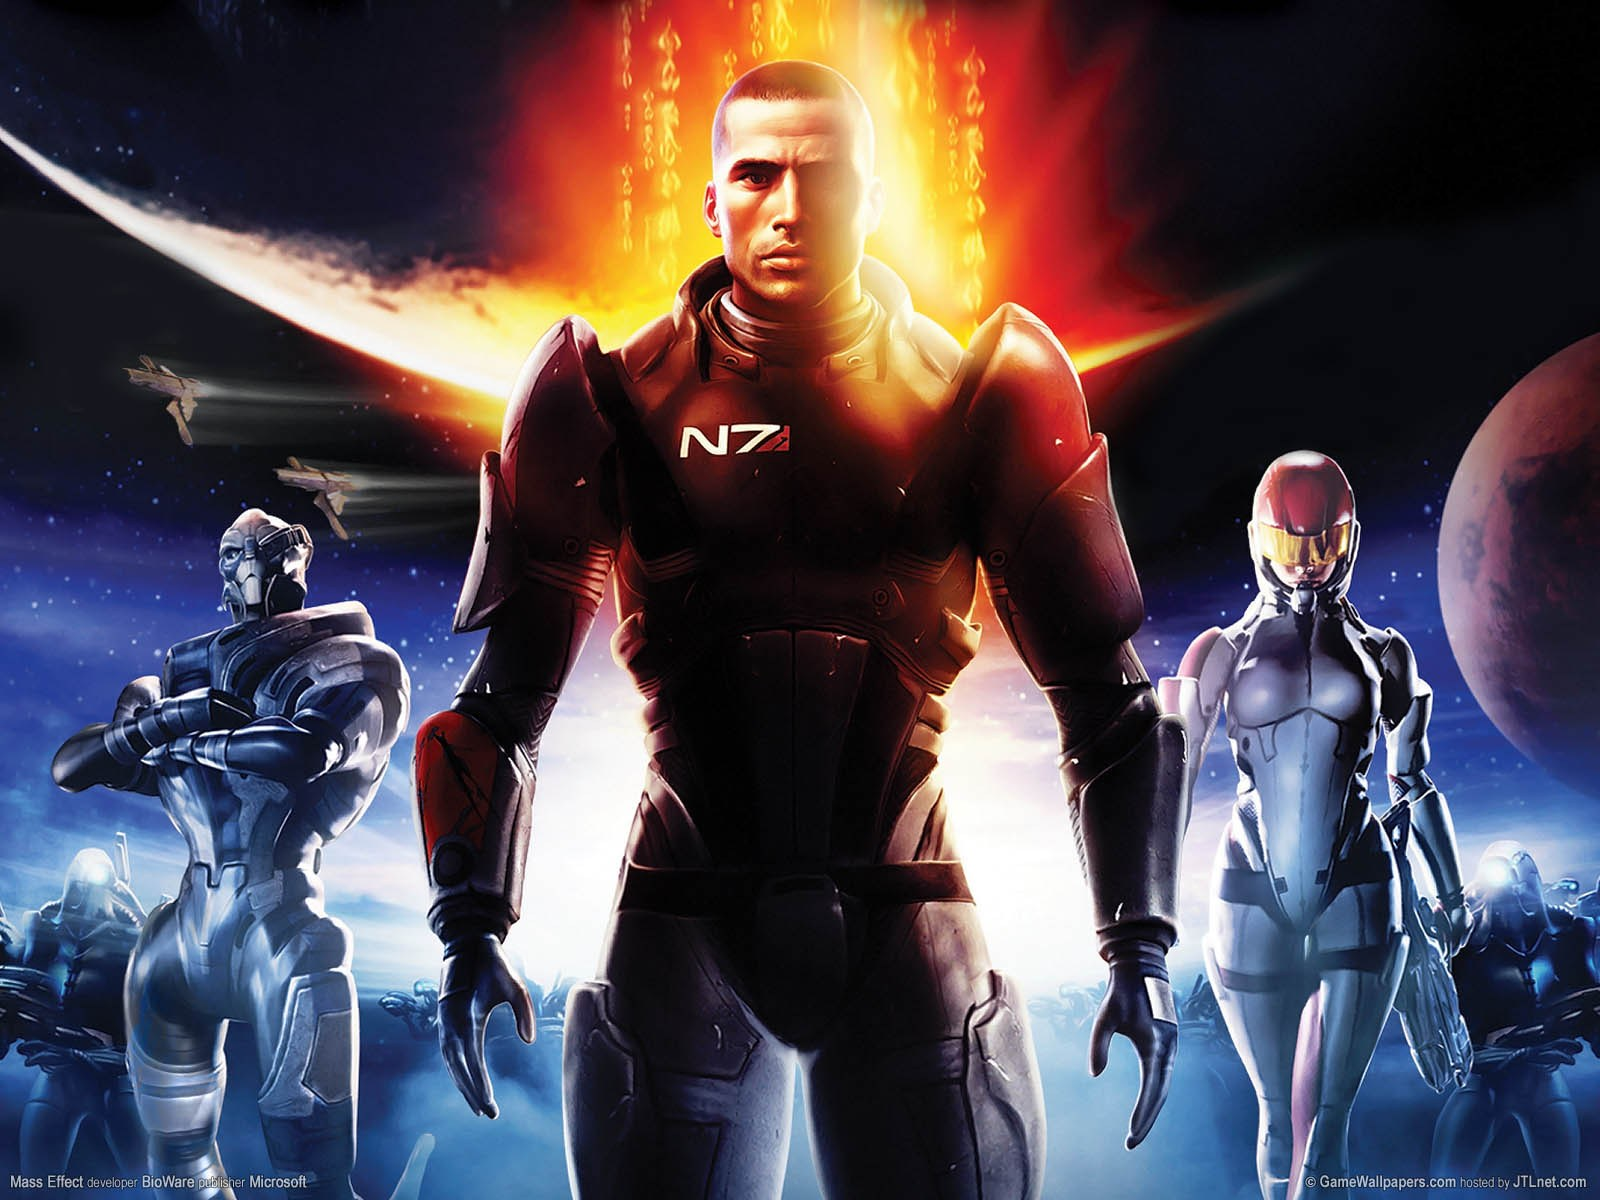 mass effect sci fi gaming at its Action it's stated in mass effect 1, as a major story of the mass effect 1 game, that the citadel is a giant mass relay used by the reapers as an entry point to the galaxy and that the keepers of the citadel are altered by the i say, high science fiction is a form of art, that asks questions no other artistic genre can pose.